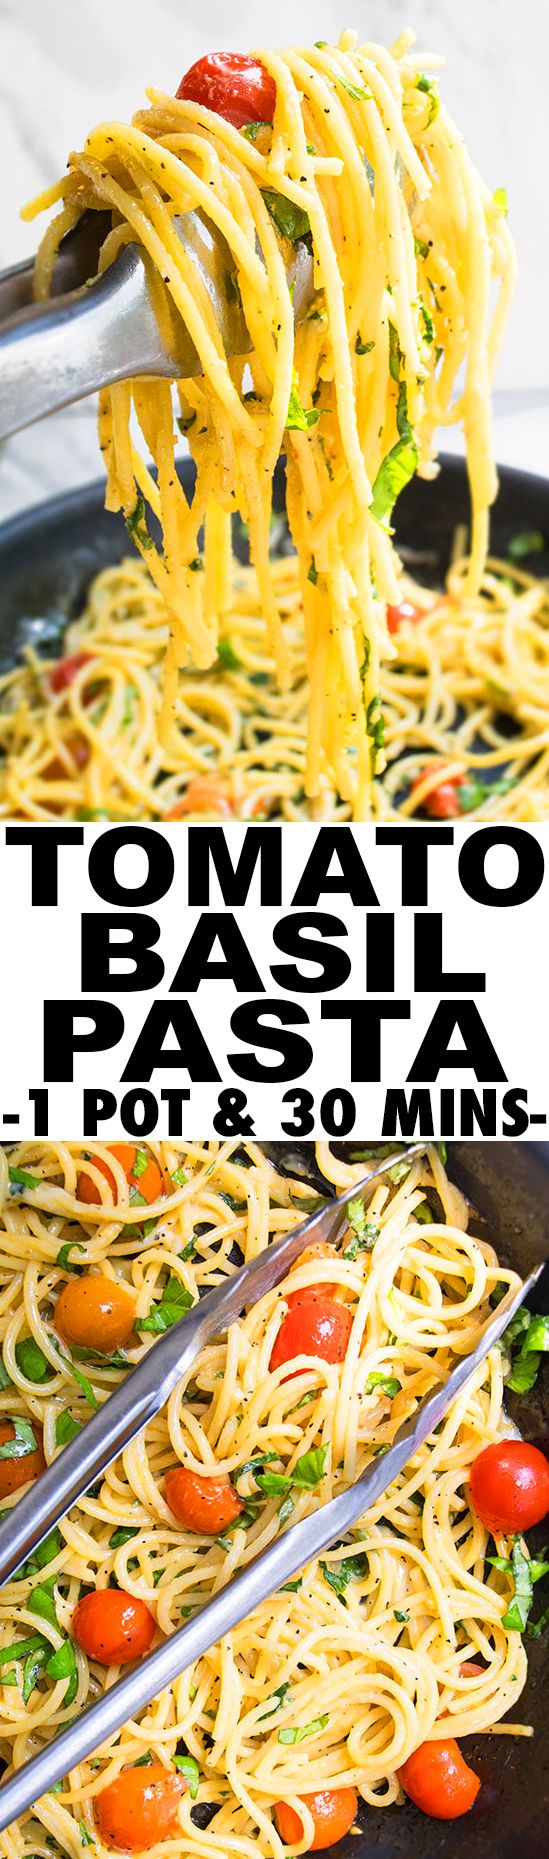 Quick and easy one pot TOMATO BASIL PASTA recipe is a simple 30 minute dinner idea. This vegetarian pasta recipe is creamy, flavorful and made with simple ingredients and the perfect easy weeknight meal. From cakewhiz.com http://healthyquickly.com/55-healthy-recipes-salads-haters/